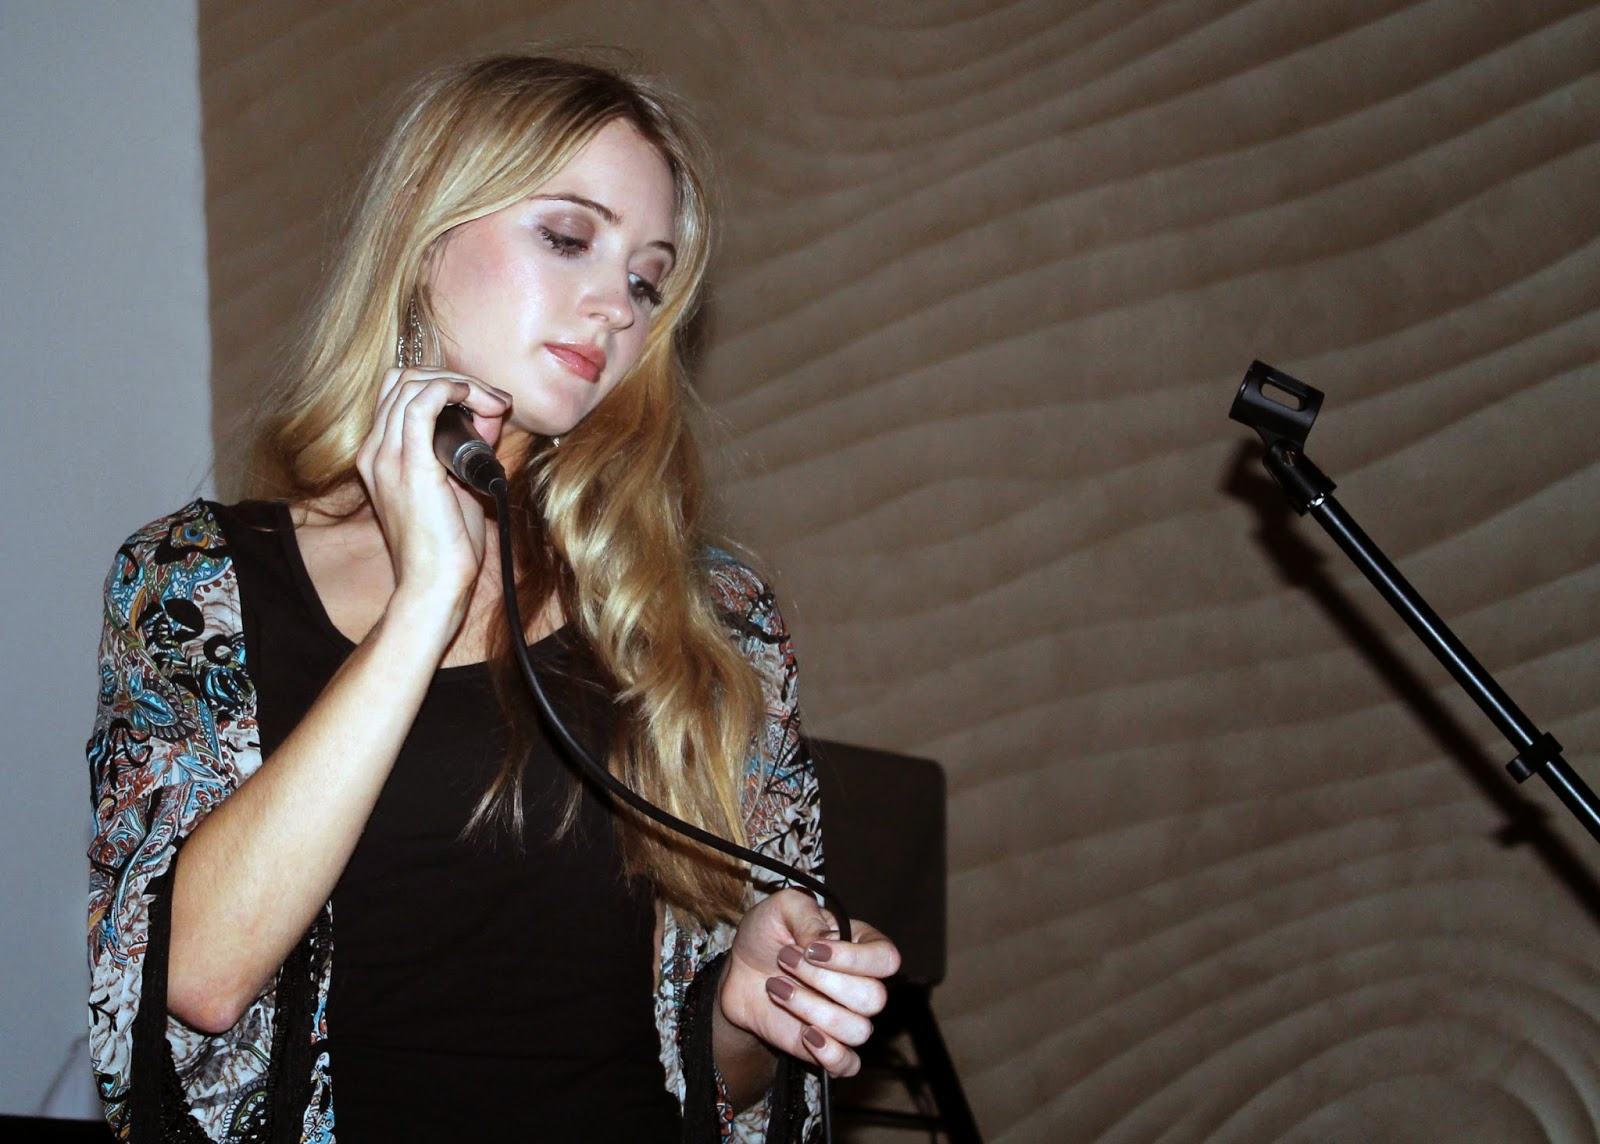 kit williams performs at inspo magazine launch party liverpool